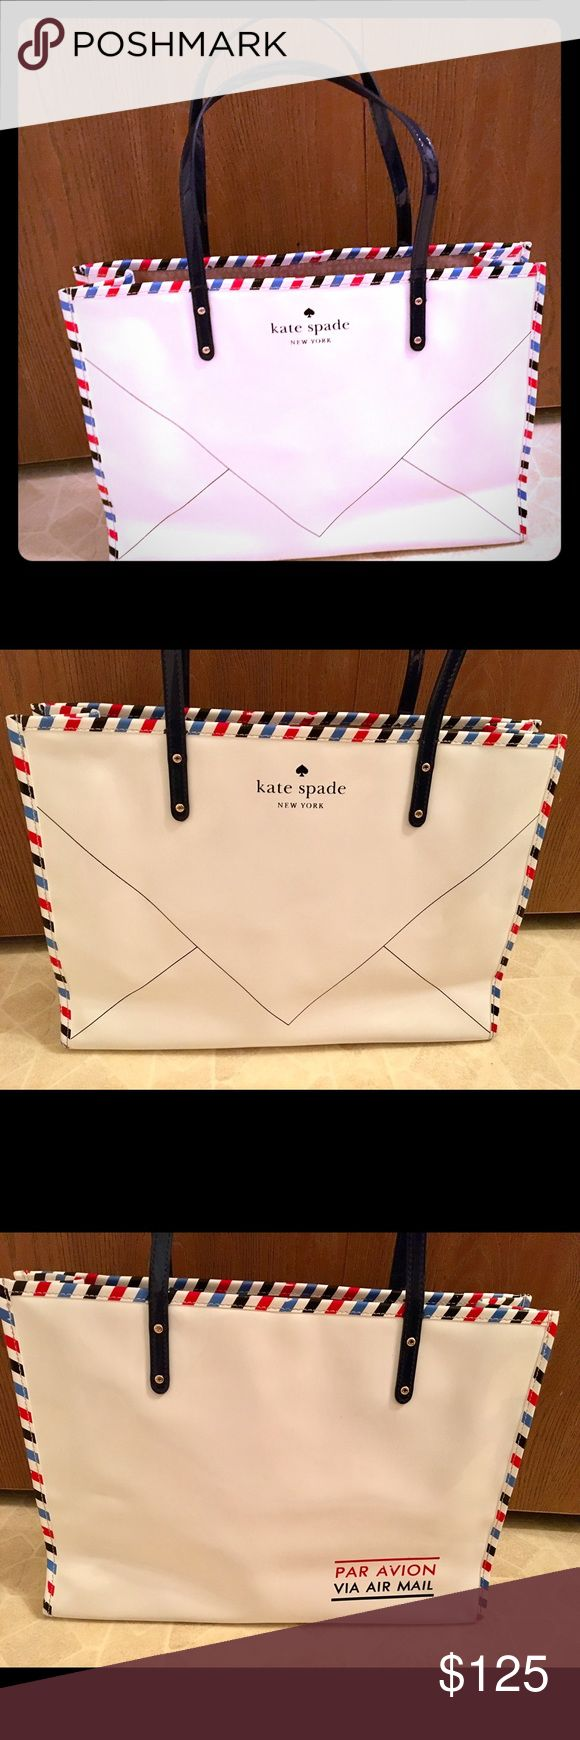 """Rare Kate Spade Par Avion Air Mail Envelope Tote This is a beautiful rare Kate Spade tote. In excellent condition. Only sign of wear are a couple of spots on the AV in the word AVION.  Otherwise in excellent condition.   Shoulder tote bag crafted in patent pvc. Front Kate Spade New York Envelope Graphic. Back """"Par Avion Via Airmail"""" graphic. Red white & blue striped border. Open top. Custom lining w interior zip and double slide pockets 15.5""""W x 11""""H x 5""""D drop length: 10''. kate spade Bags…"""